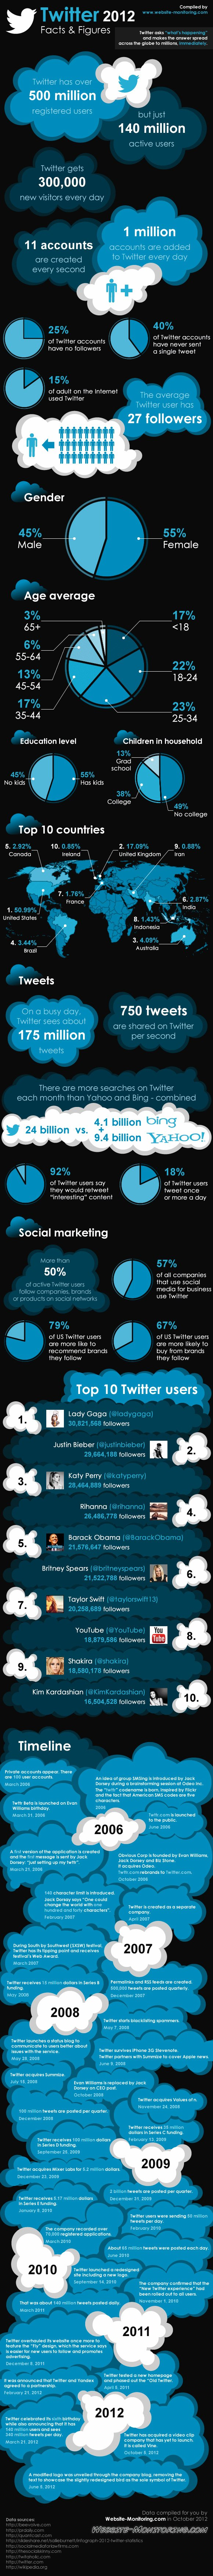 Twitter 2012 – Facts and Figures (infographic) ACTUAL DATA